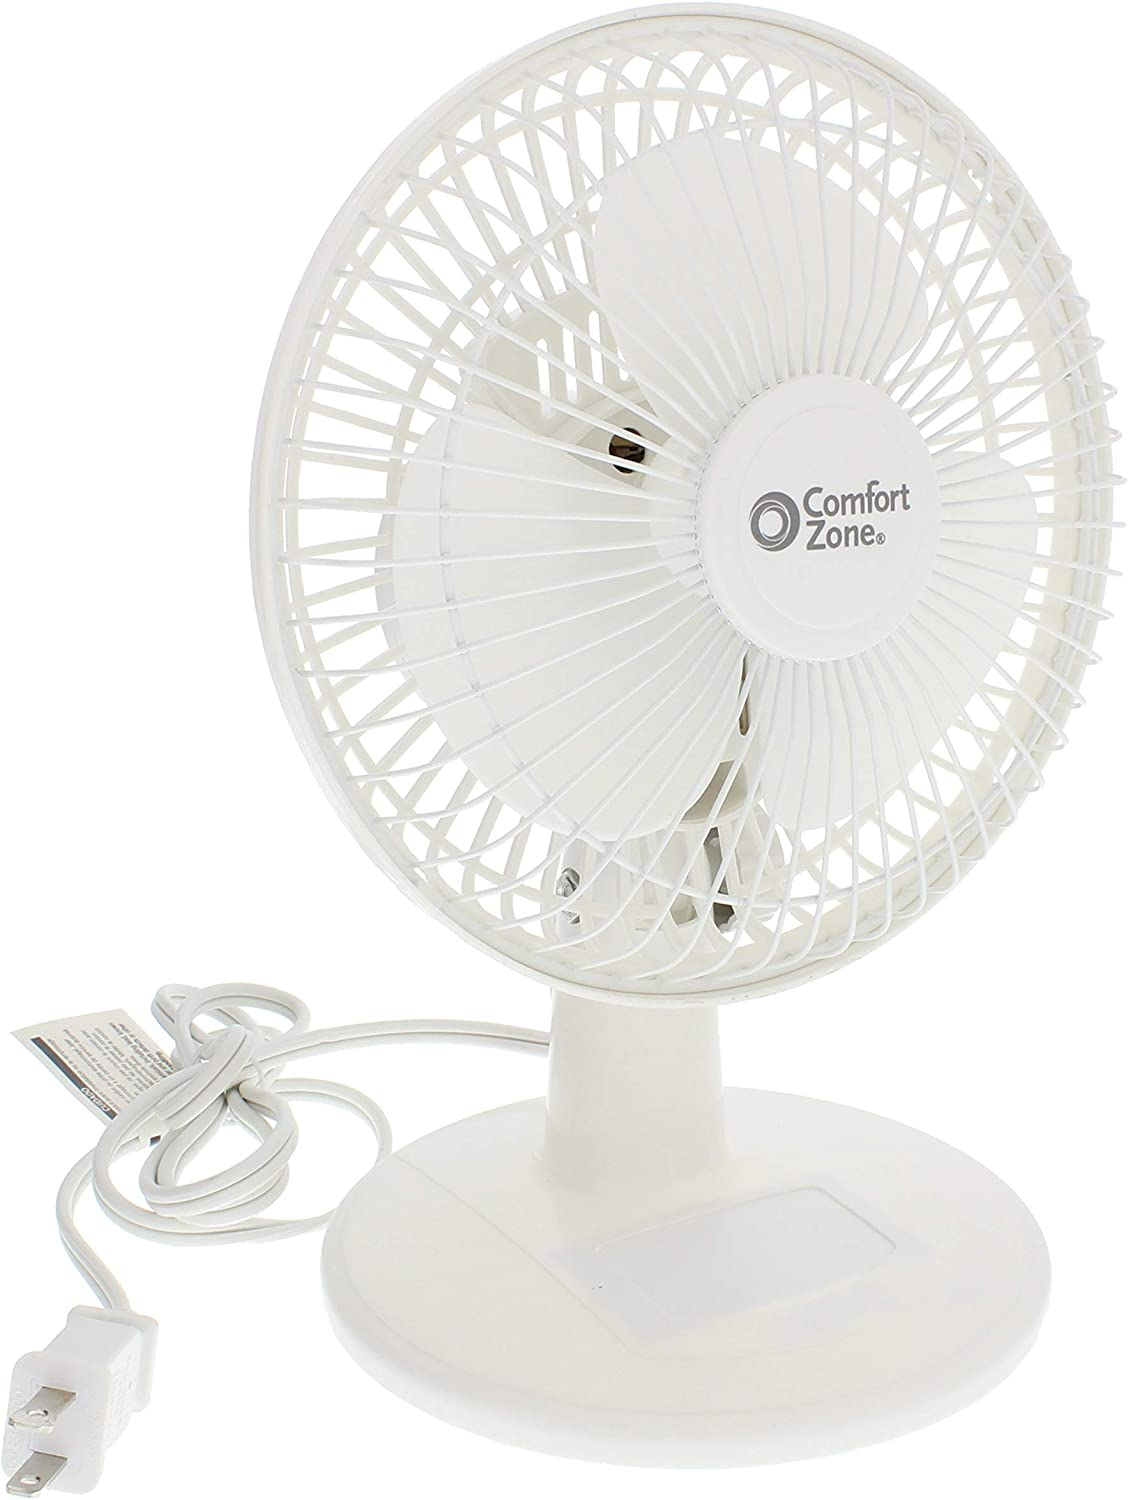 Comfort Zone Desk Fan - Whisper Quiet, 2 Speed, 6""